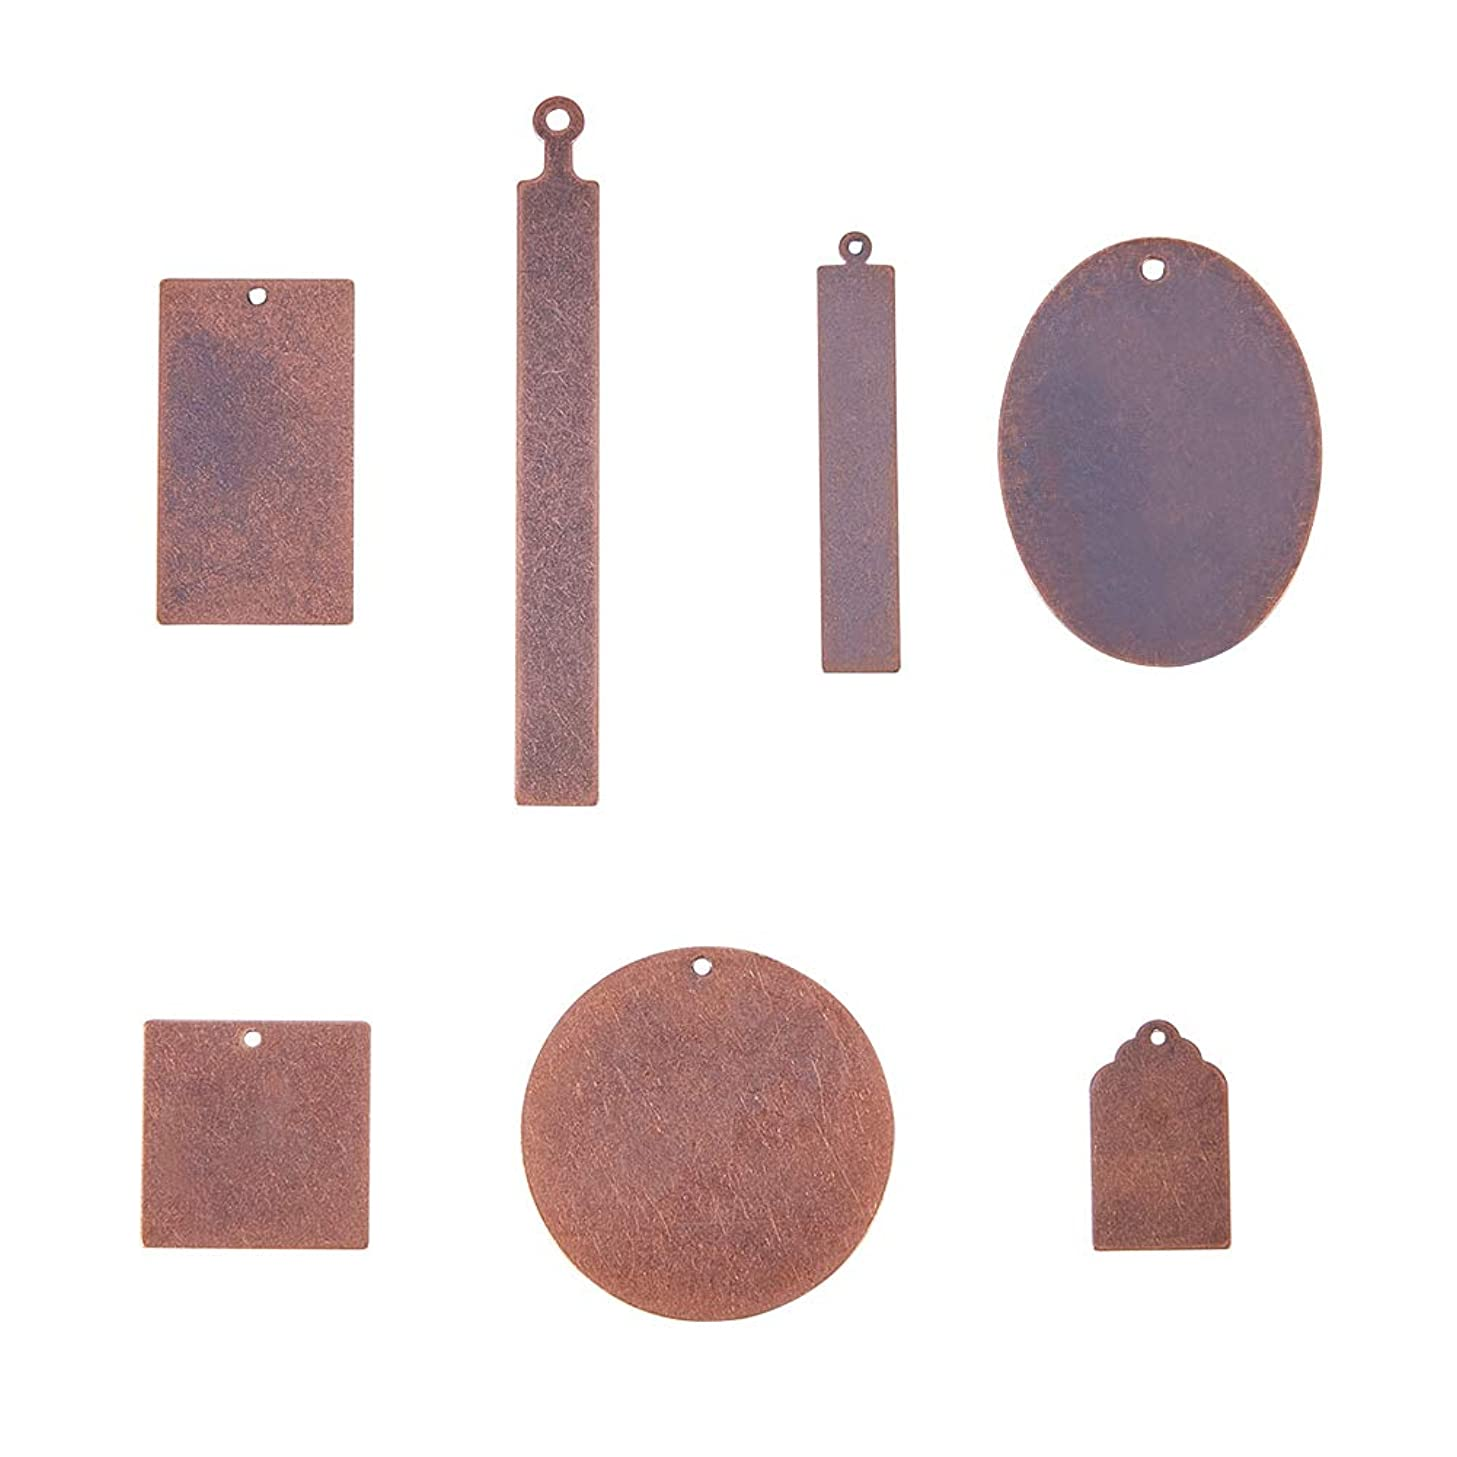 PandaHall Elite 42 Pcs Brass Flat Blank Stamping Tag Pendants Charms 7 Styles for Jewelry Making Red Copper